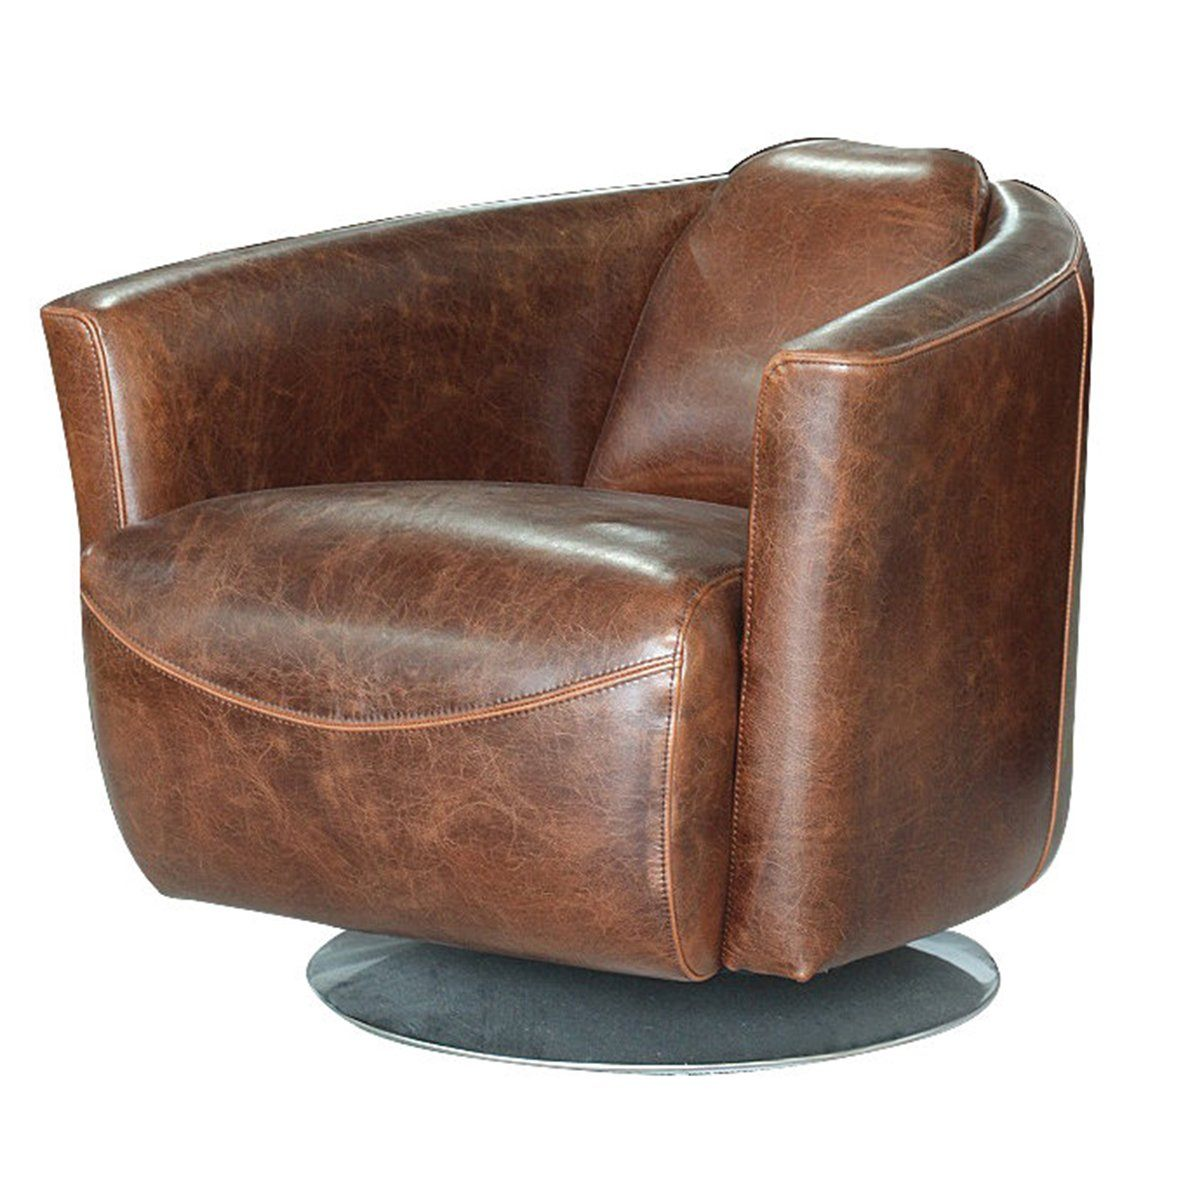 Lannister Swivel Club Chair - Leather Chairs LH